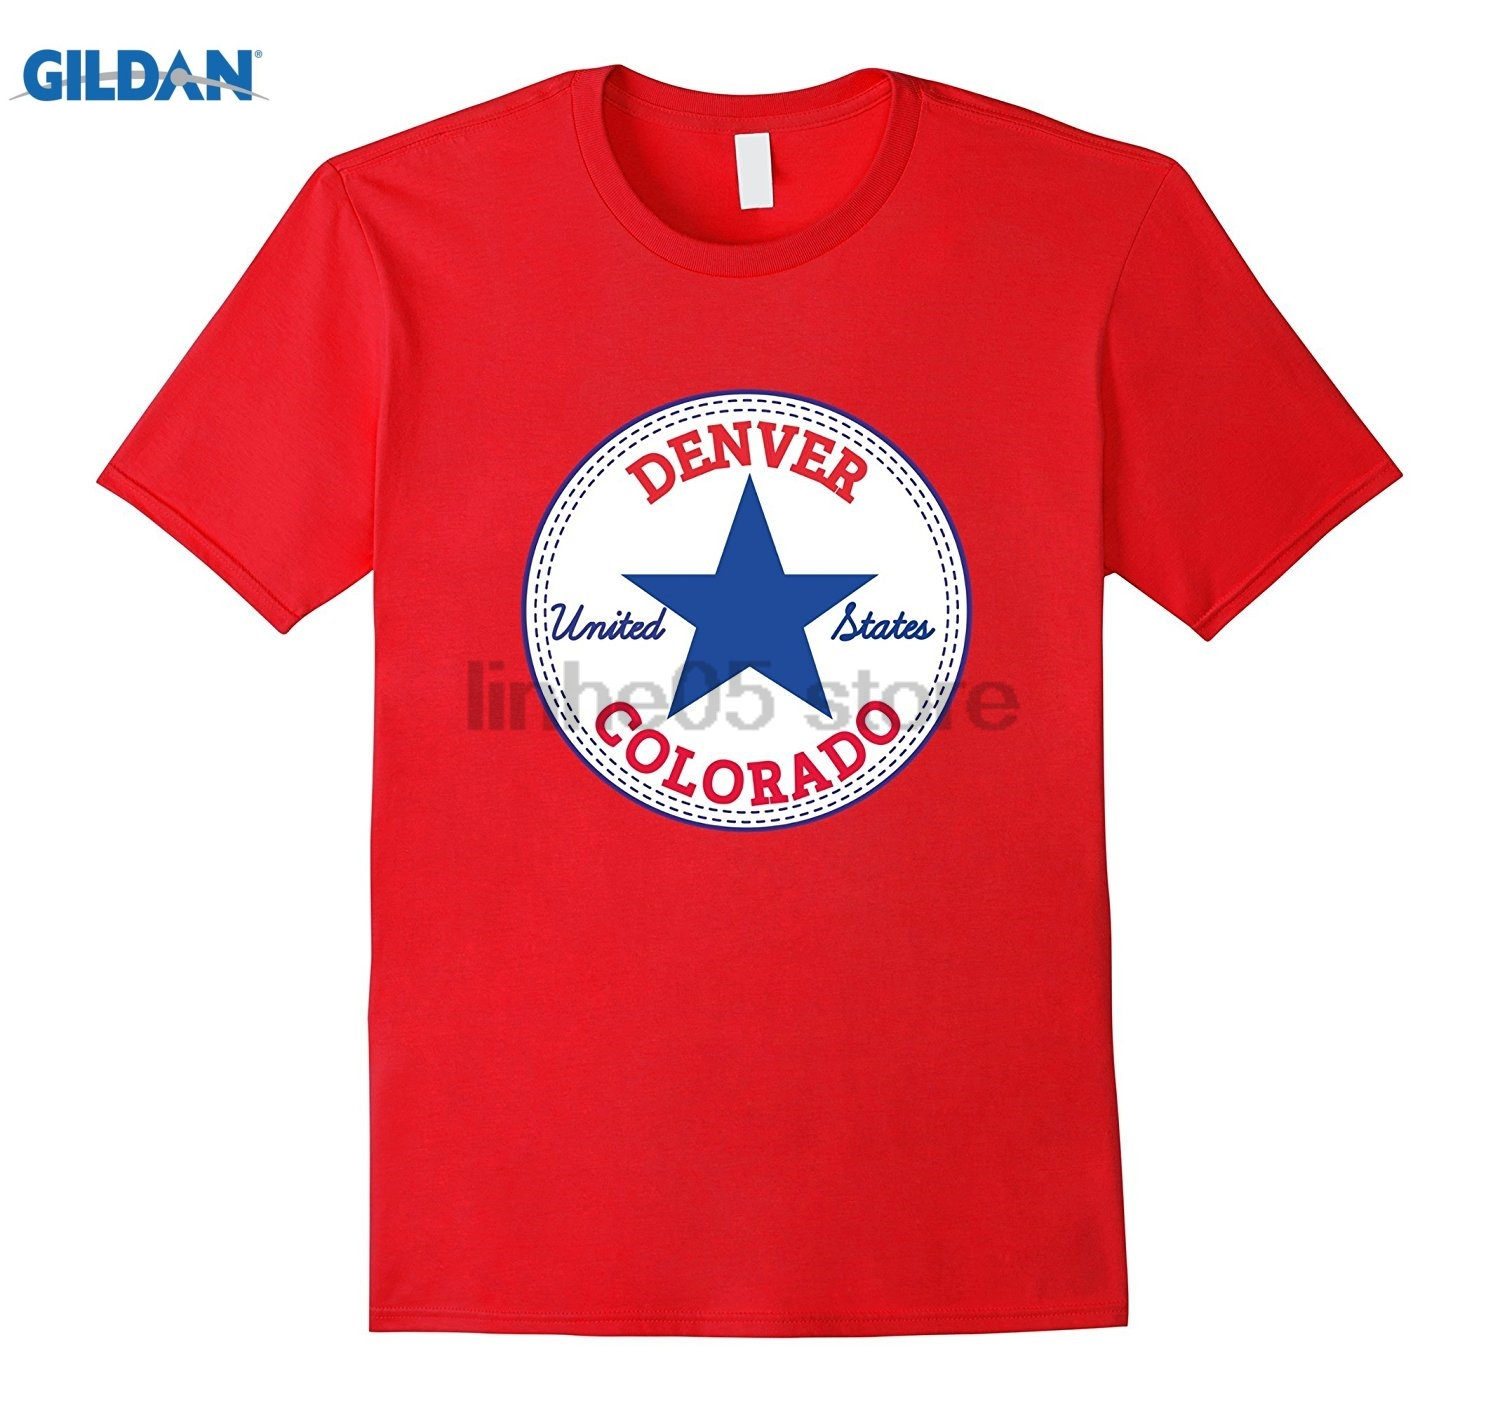 GILDAN DENVER - COLORADO United States USA relaxed fit T-Shirt Womens T-shirt ...